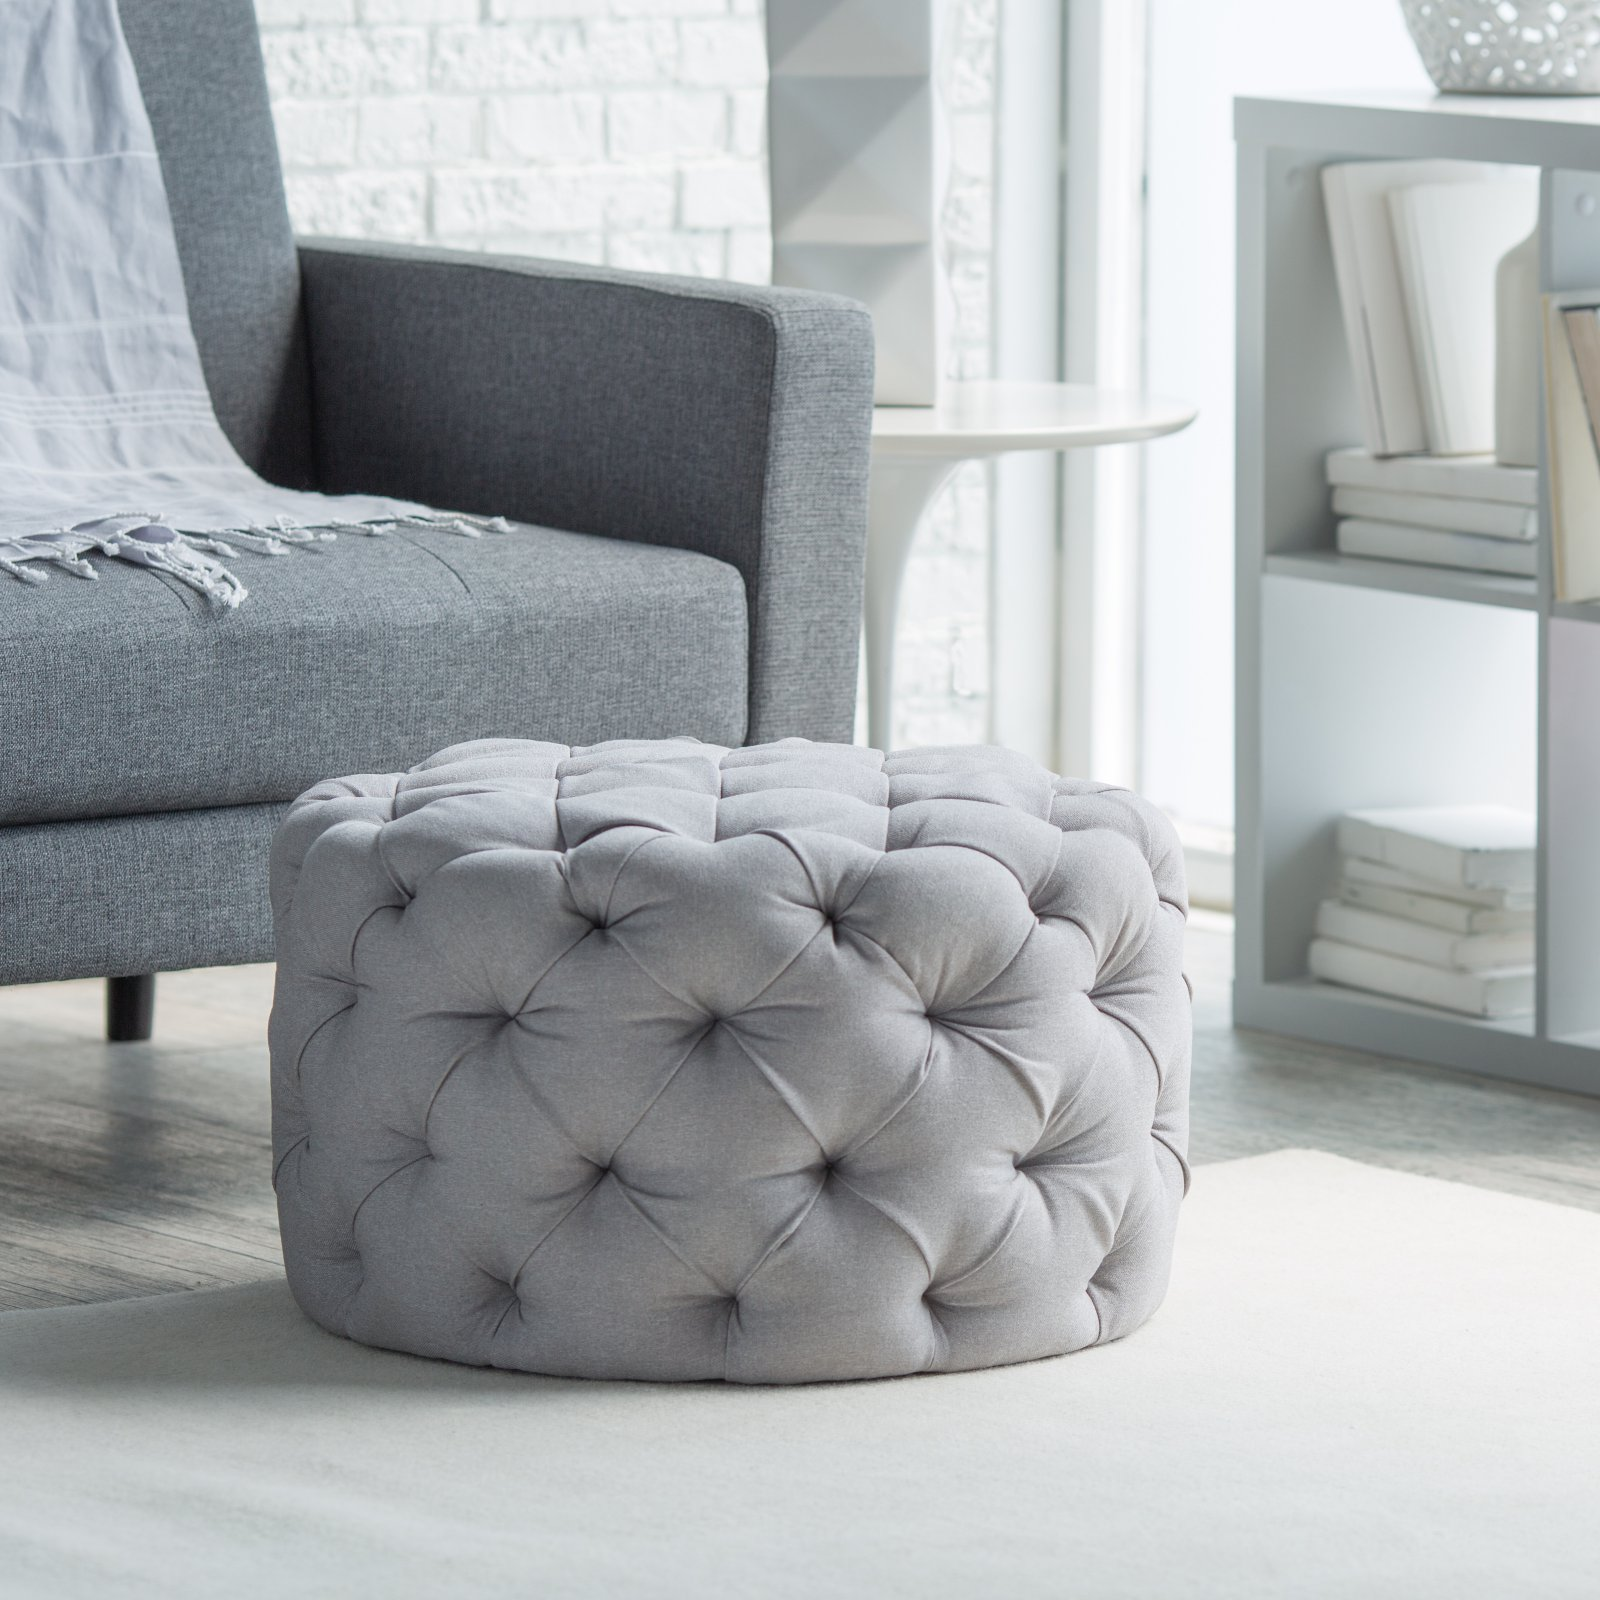 Belham Living Allover Round Tufted Ottoman - Grey